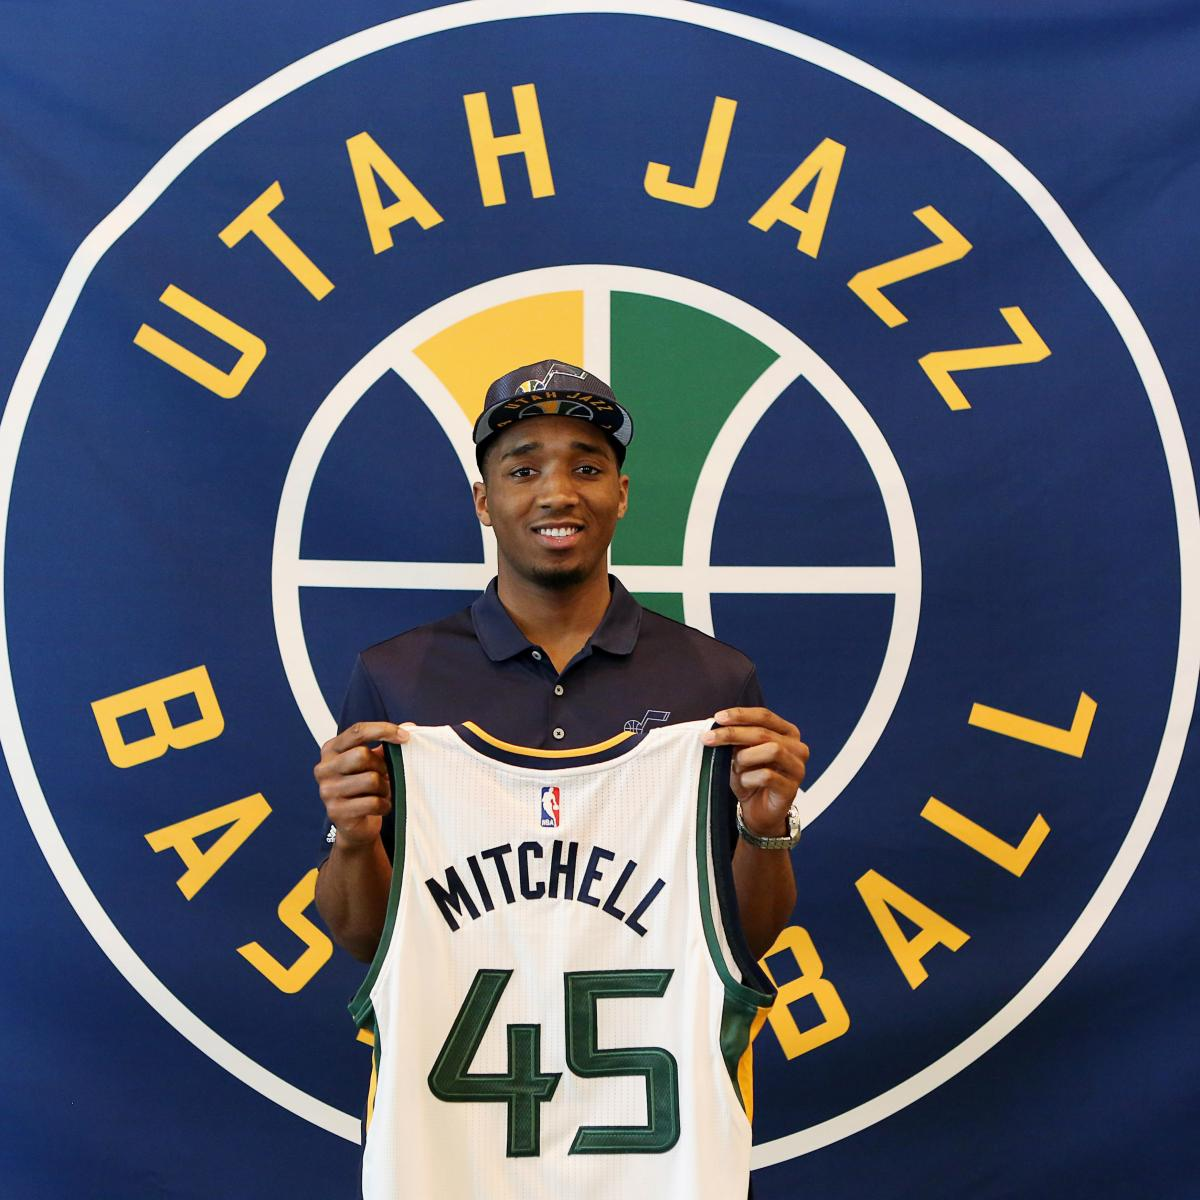 Colorado Shooting R H Youtube Com: Donovan Mitchell Signs Utah Jazz Rookie Contract